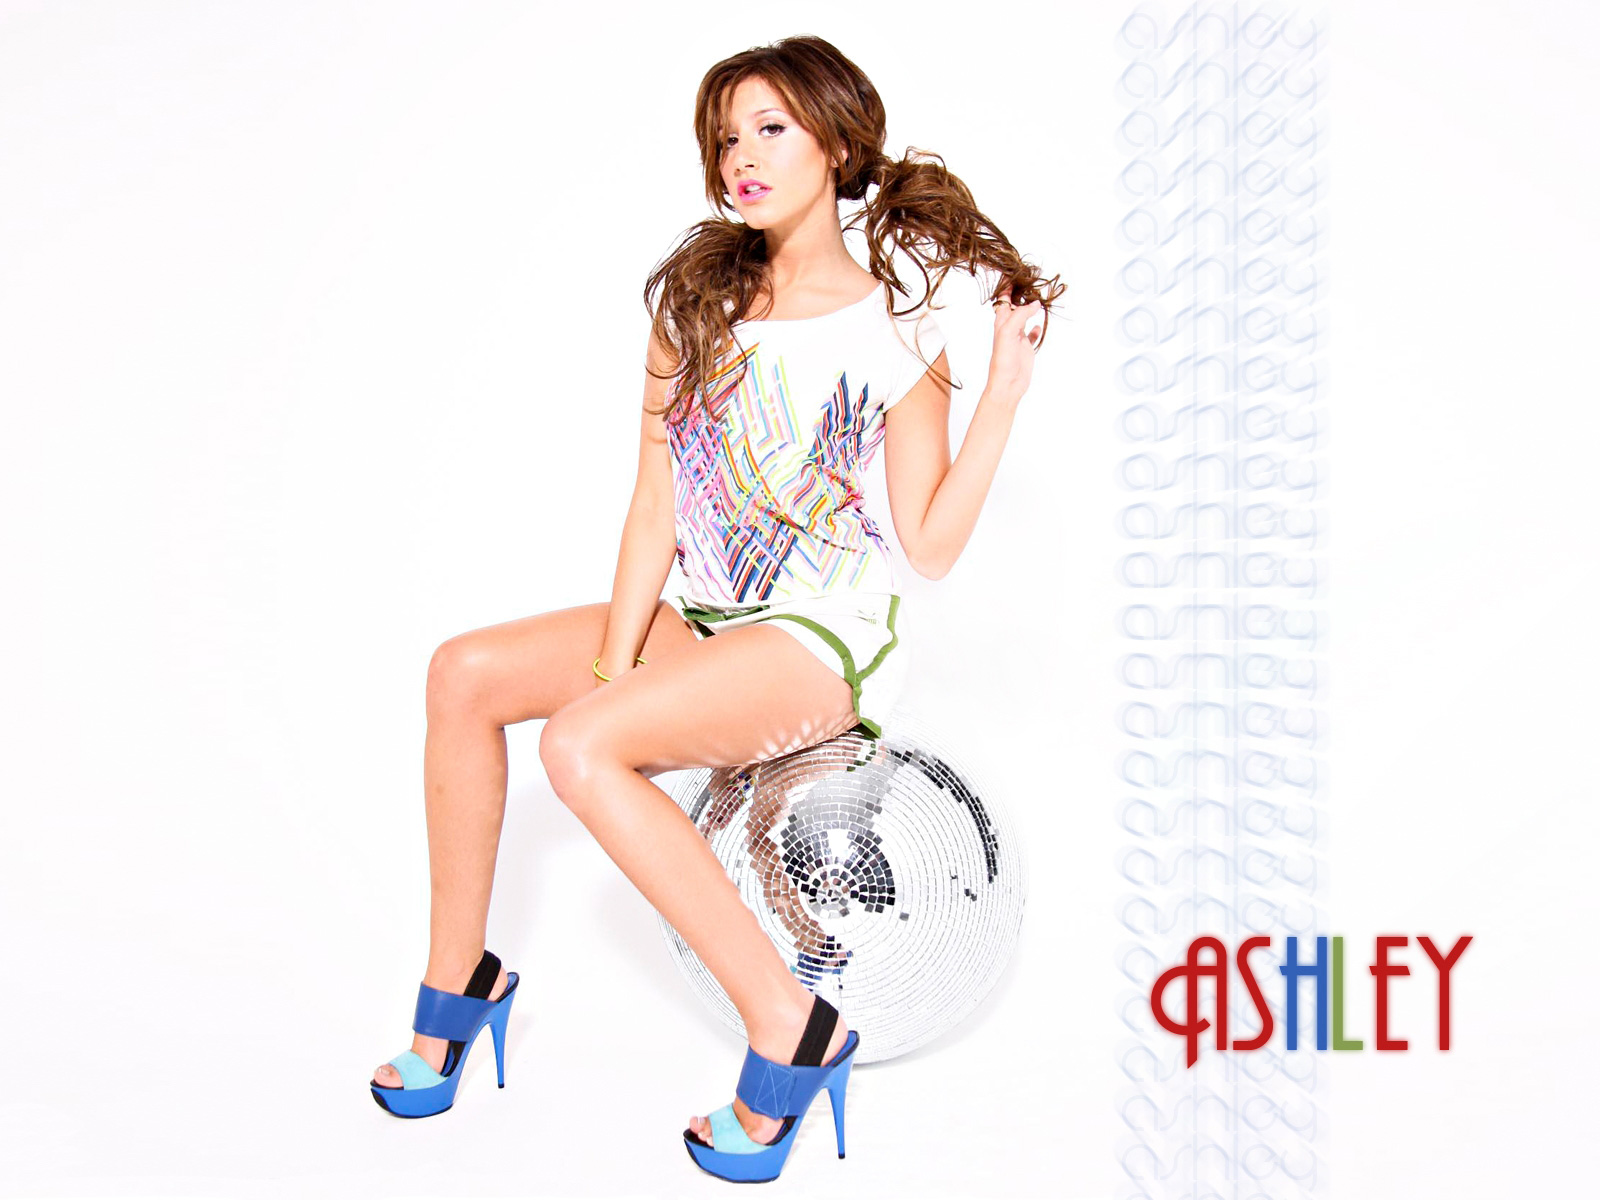 Ashley Tisdale 2010 New wallpaper